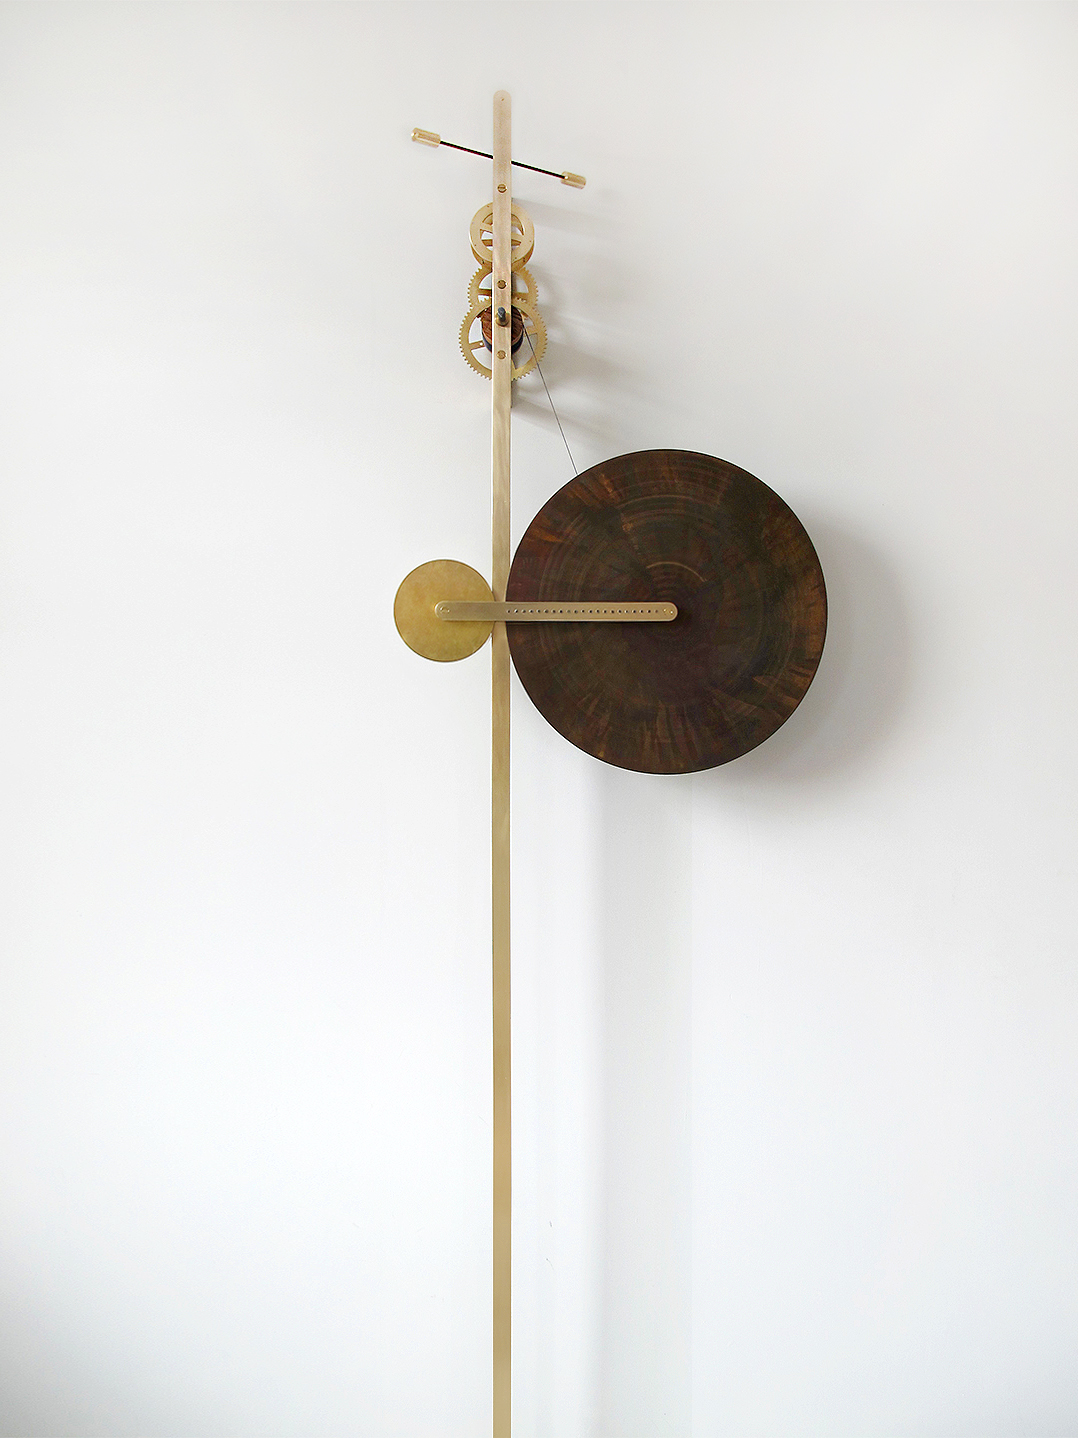 Clean Sweep Sculptural Piece - <p>Clean Sweep is a sculptural time piece composed of a large brass disc which rotates very slowly down a vertical stem, making one revolution over a period of approximately 12 hours. The brass disc is oxidised with a rich, coloured patina that is gradually cleaned away by brushes within the armature as the disc rotates on its journey downwards. Concentric rings of cleaned brass contrast with the patinated surface, offering a continually changing canvas and a different way to think about the passage of time. </p>  | Matter of Stuff